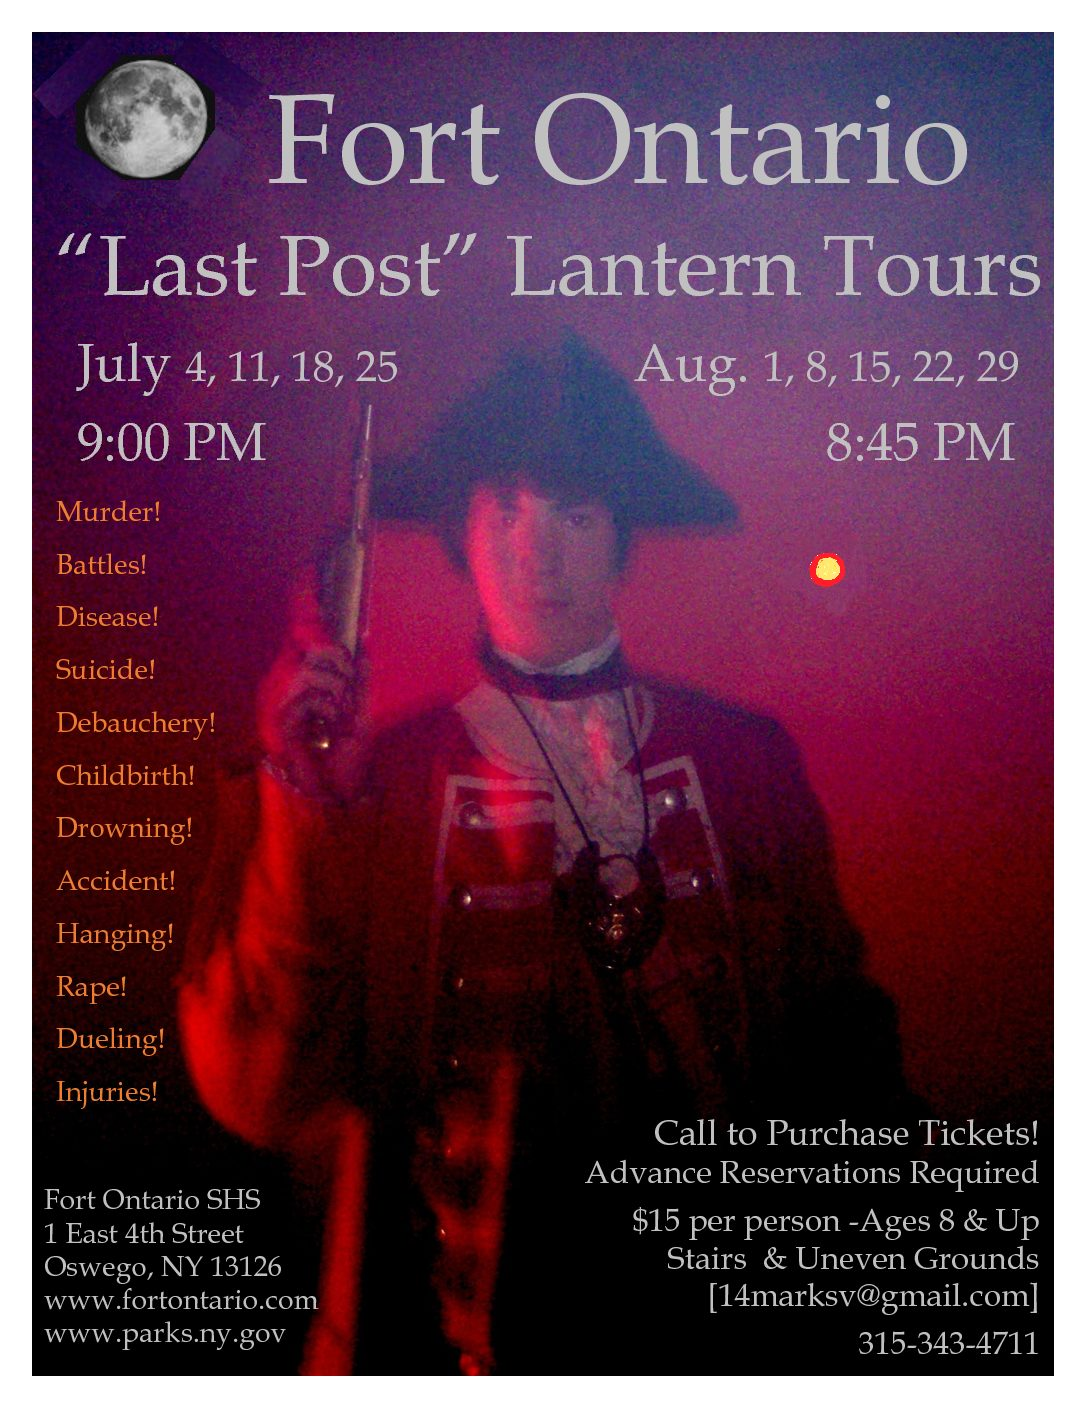 """Last Post"" Lantern Tours of Fort Ontario"